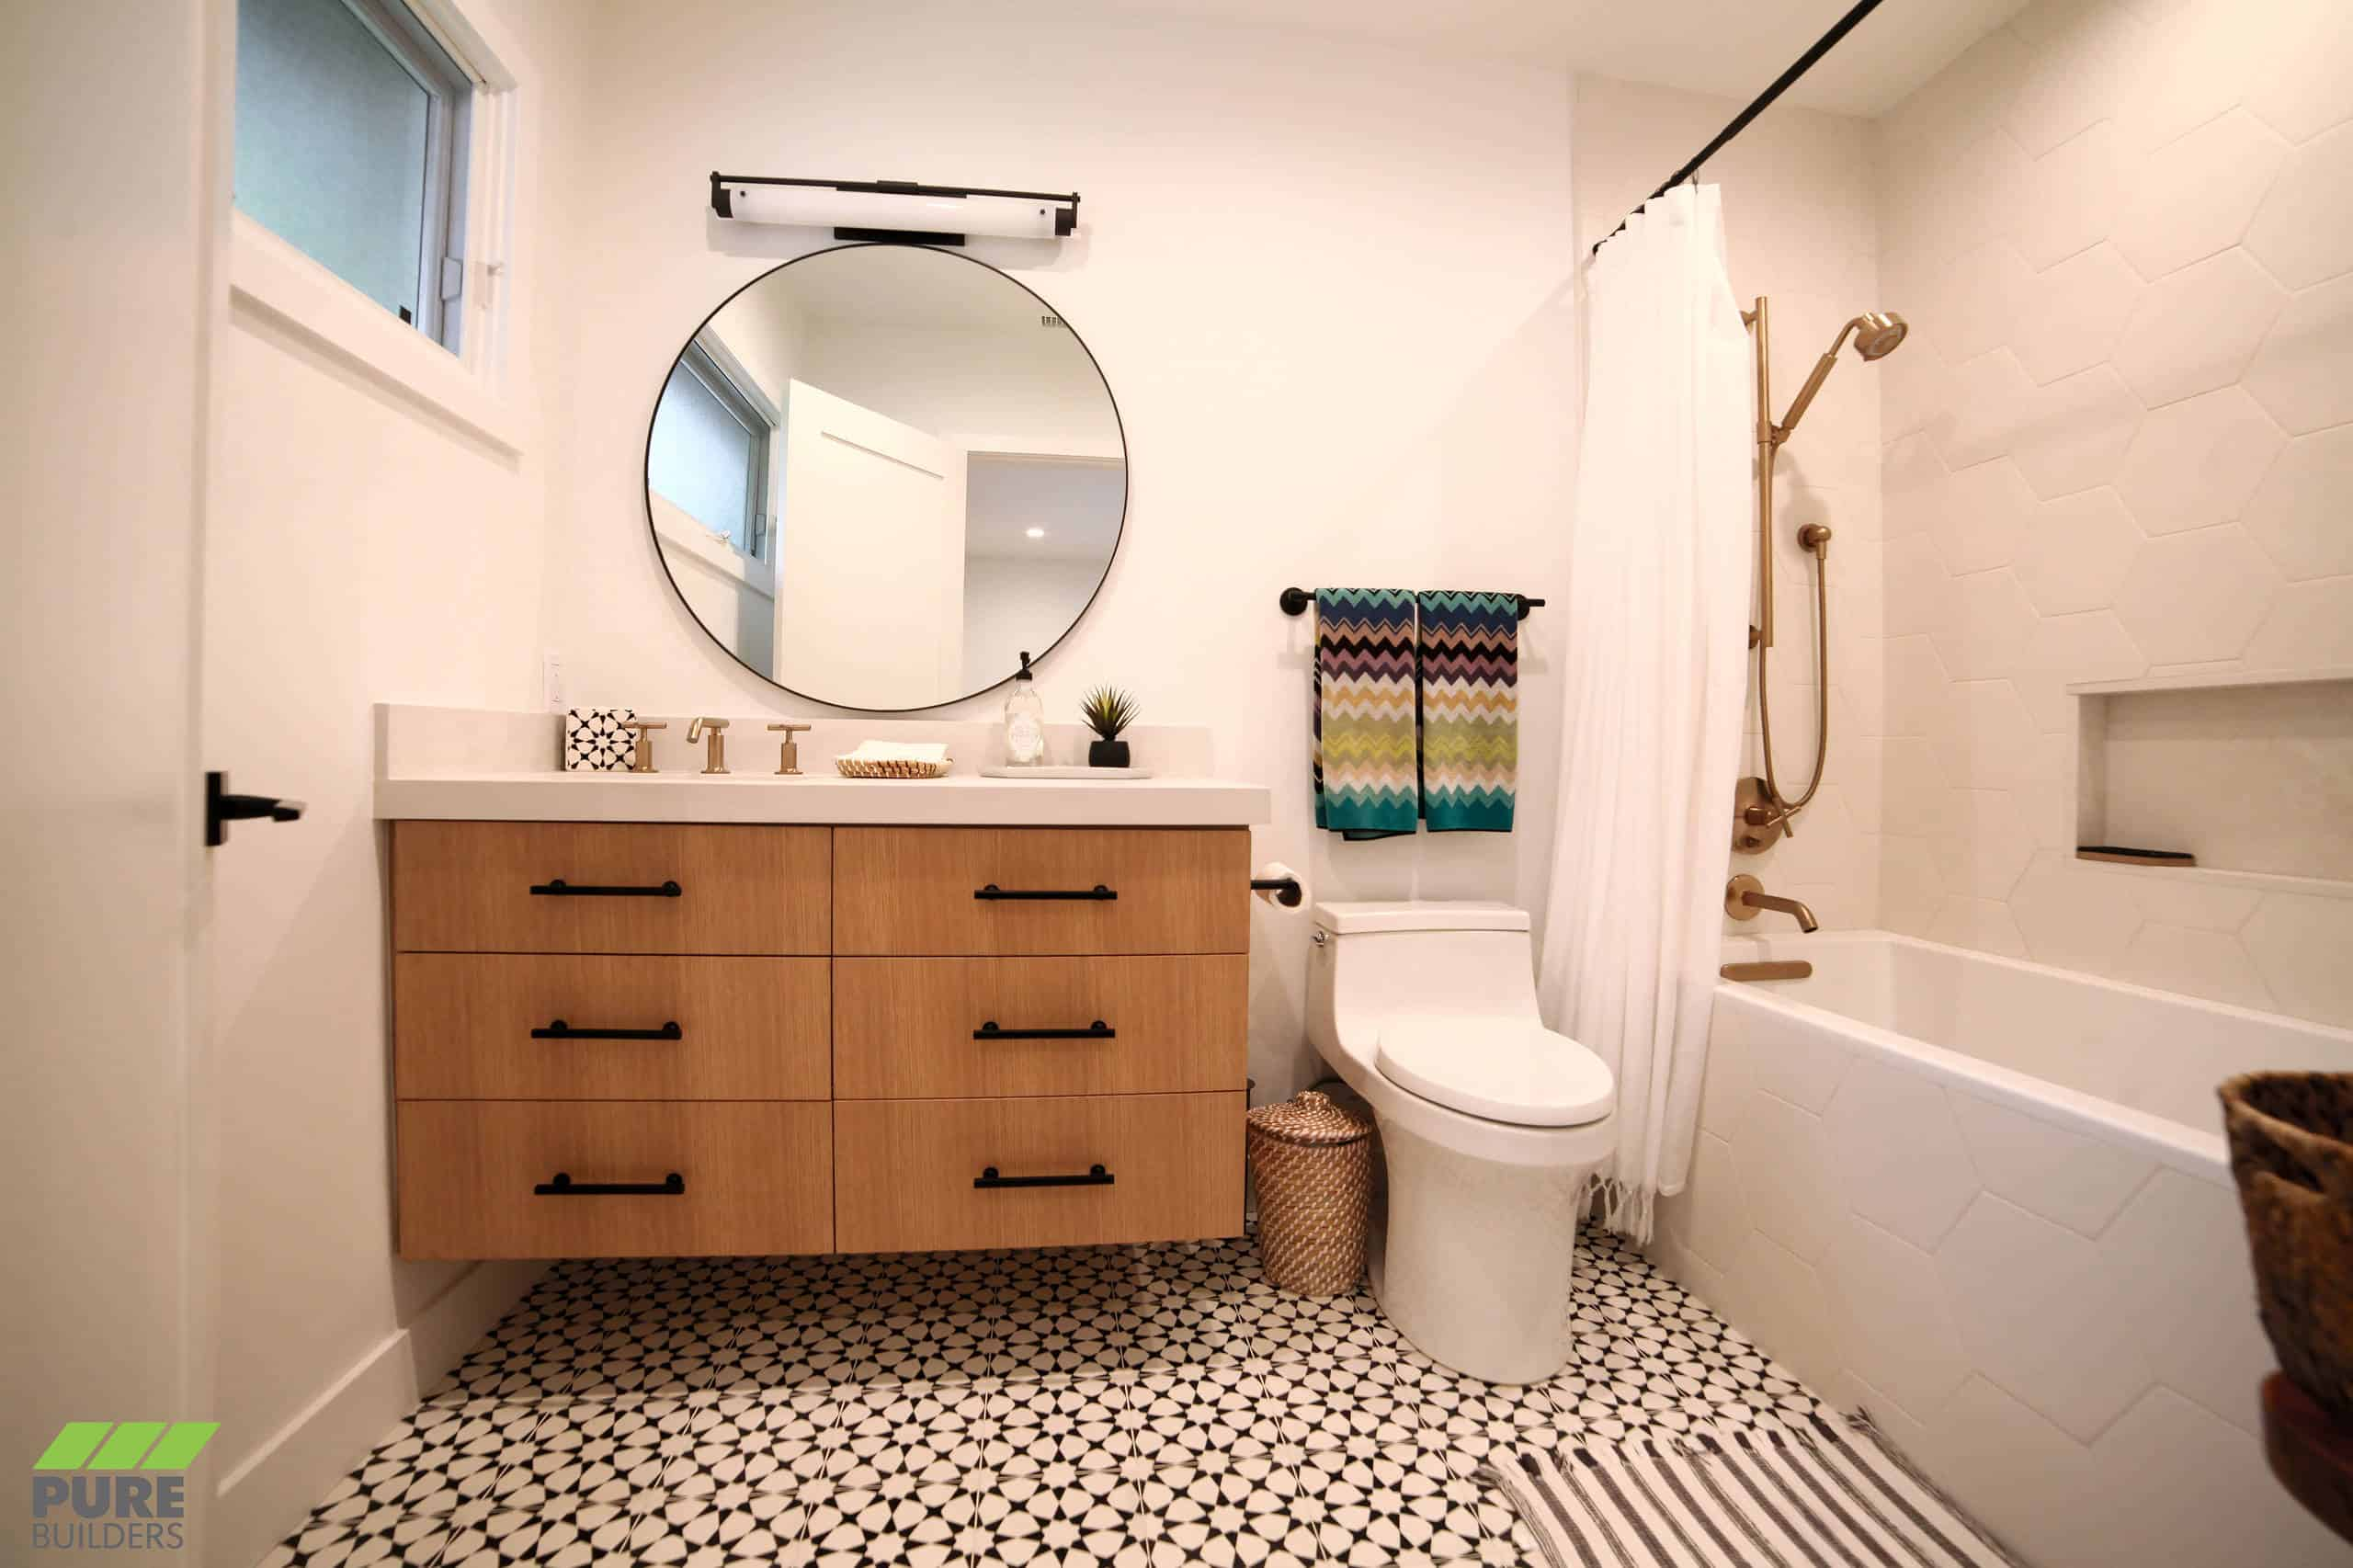 White honey comb tile walls, black and white pattern floor, wooden cabinets